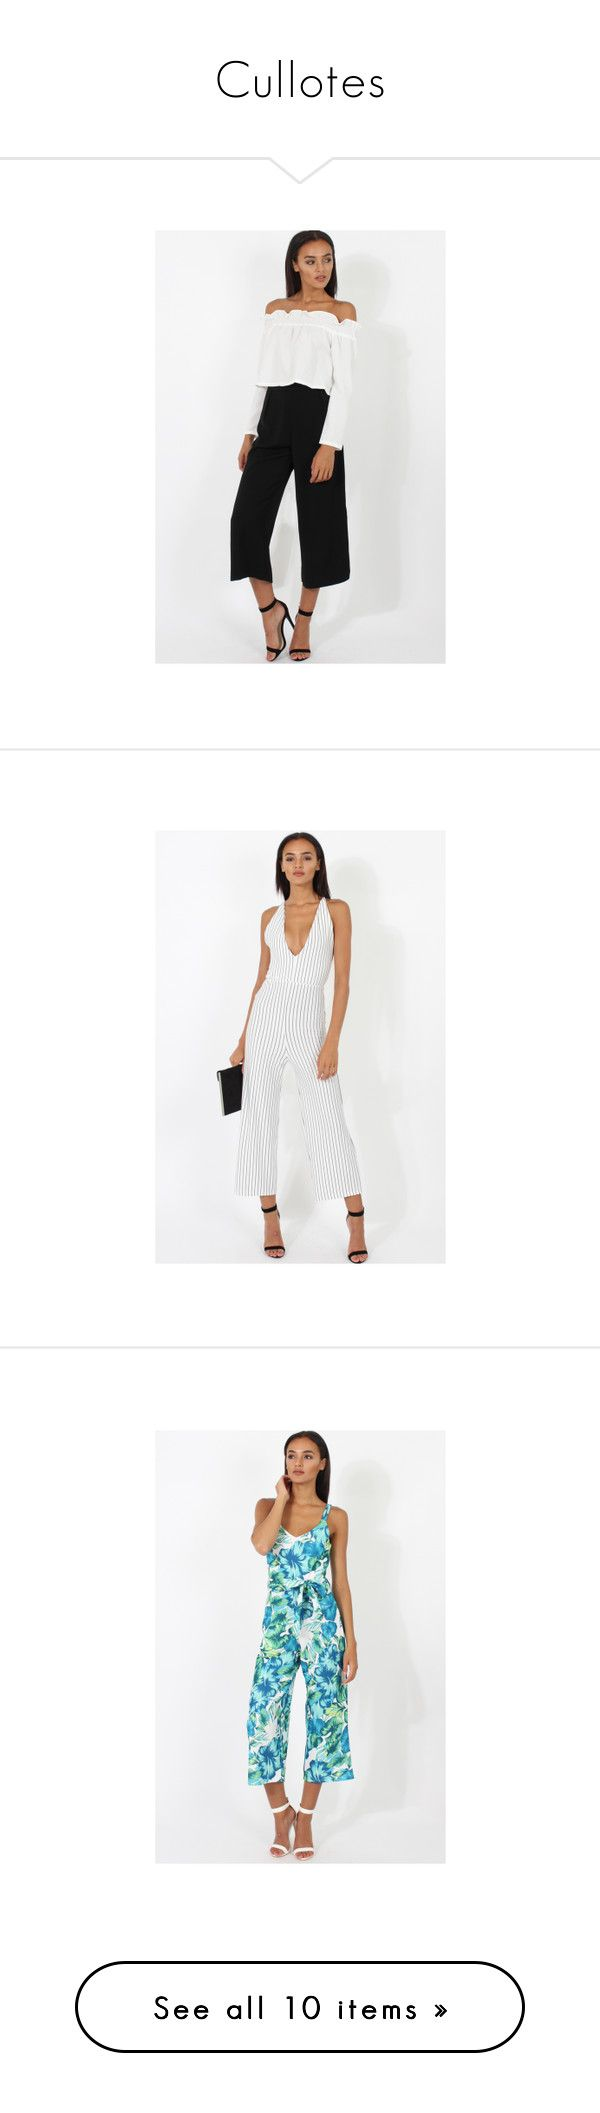 """""""Cullotes"""" by rebellious-fashion ❤ liked on Polyvore featuring pants, white pants, white trousers, white cigarette trousers, cigarette trousers, white cigarette pants, jumpsuits, red jump suit, jump suit and red jumpsuit"""